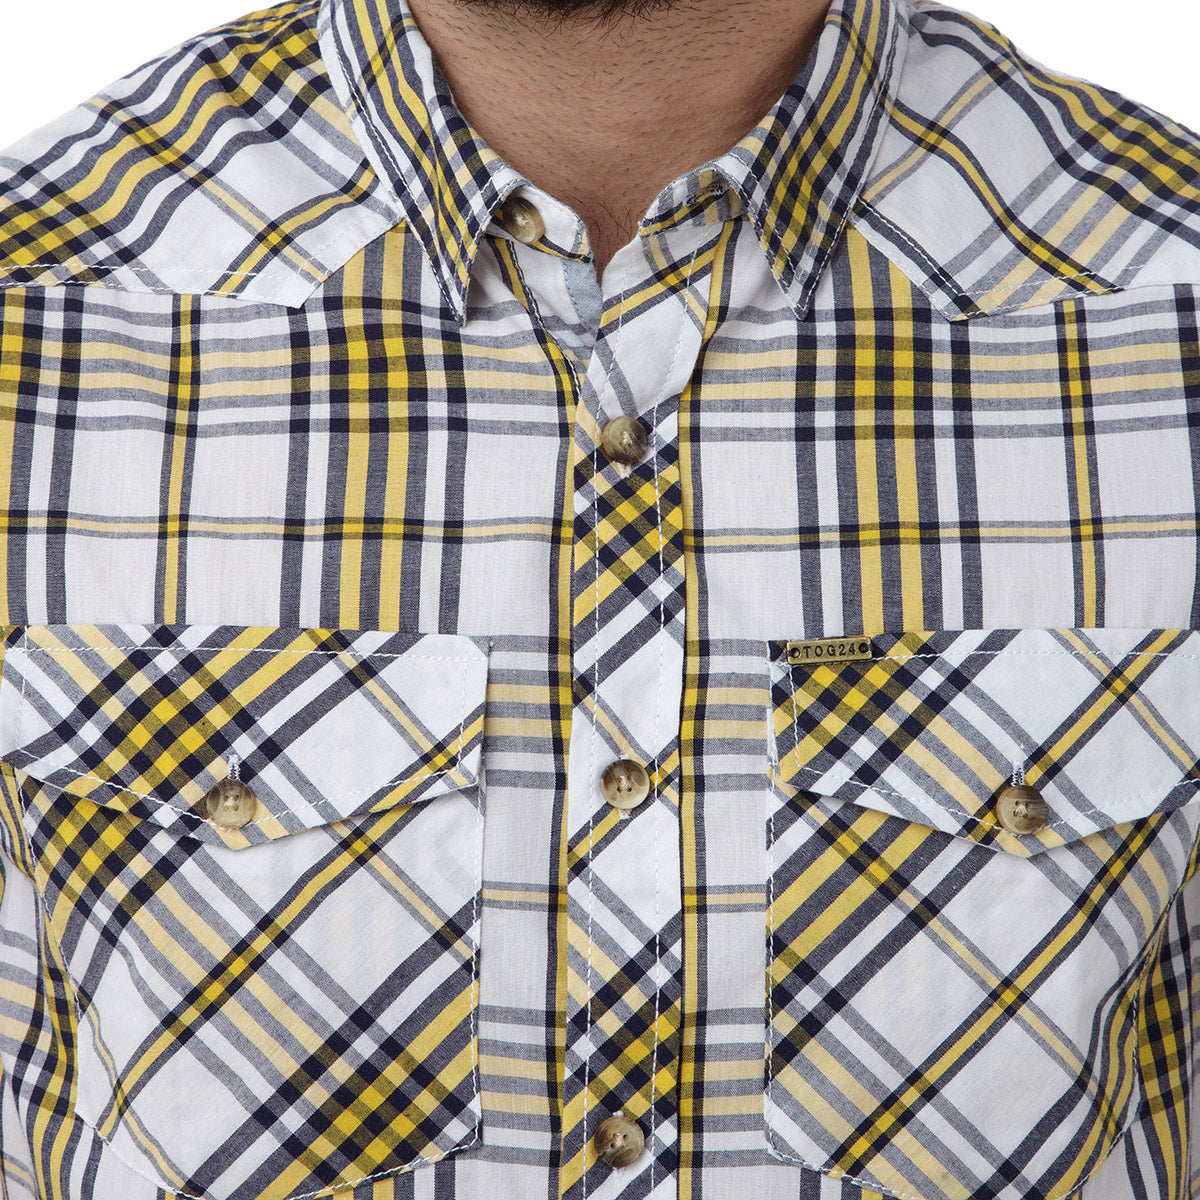 Oliver Mens TCZ Cotton Shirt - Citrus Check image 4